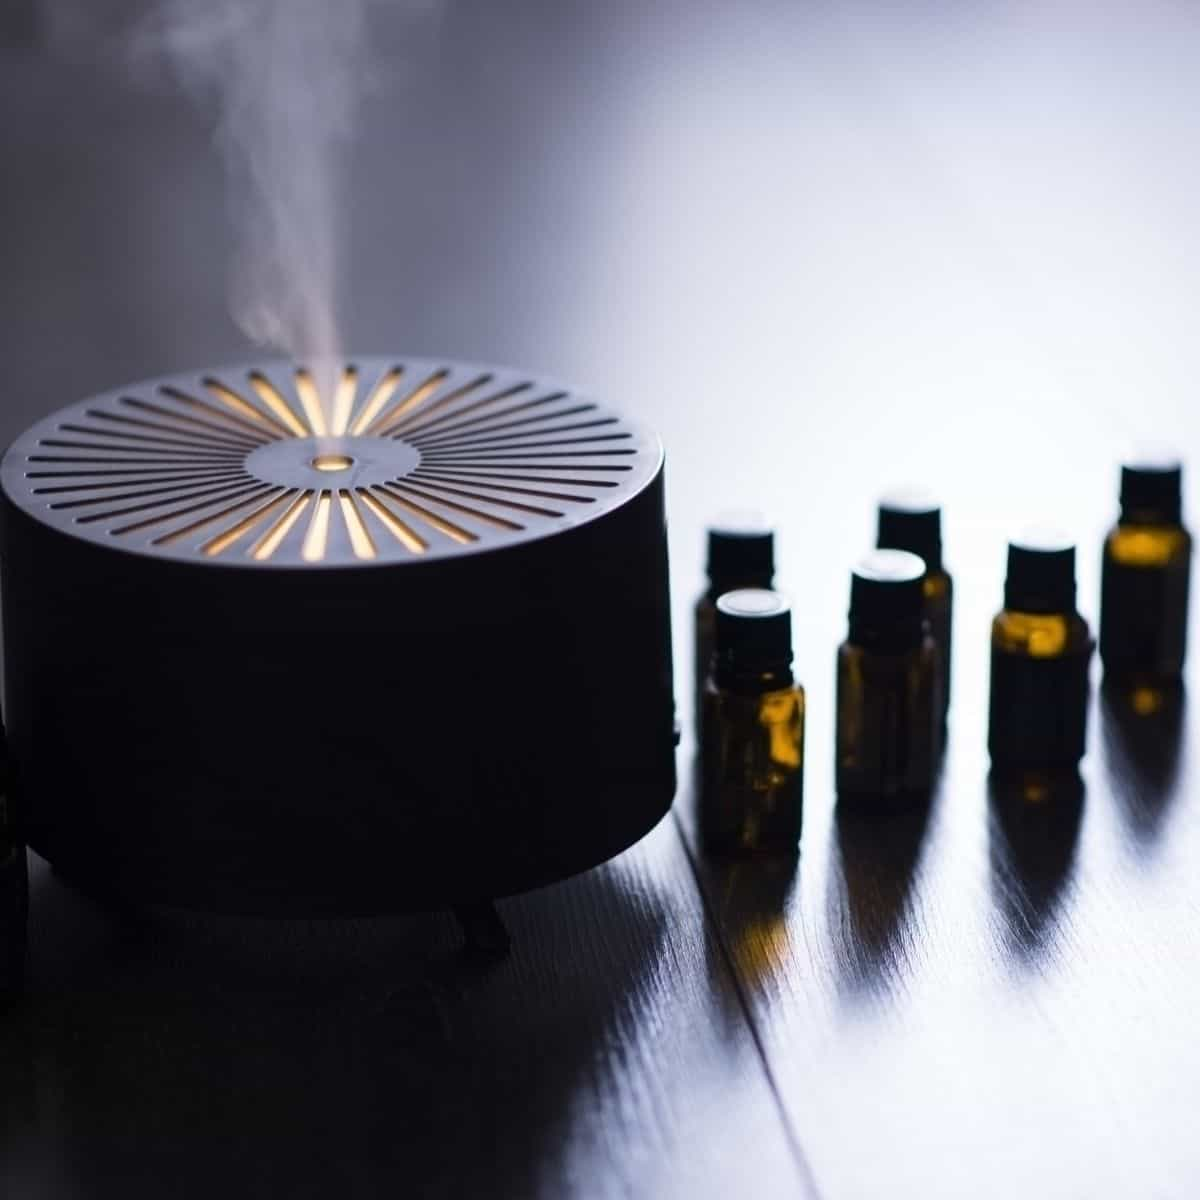 essential oil diffuser with essential oil bottles on table.